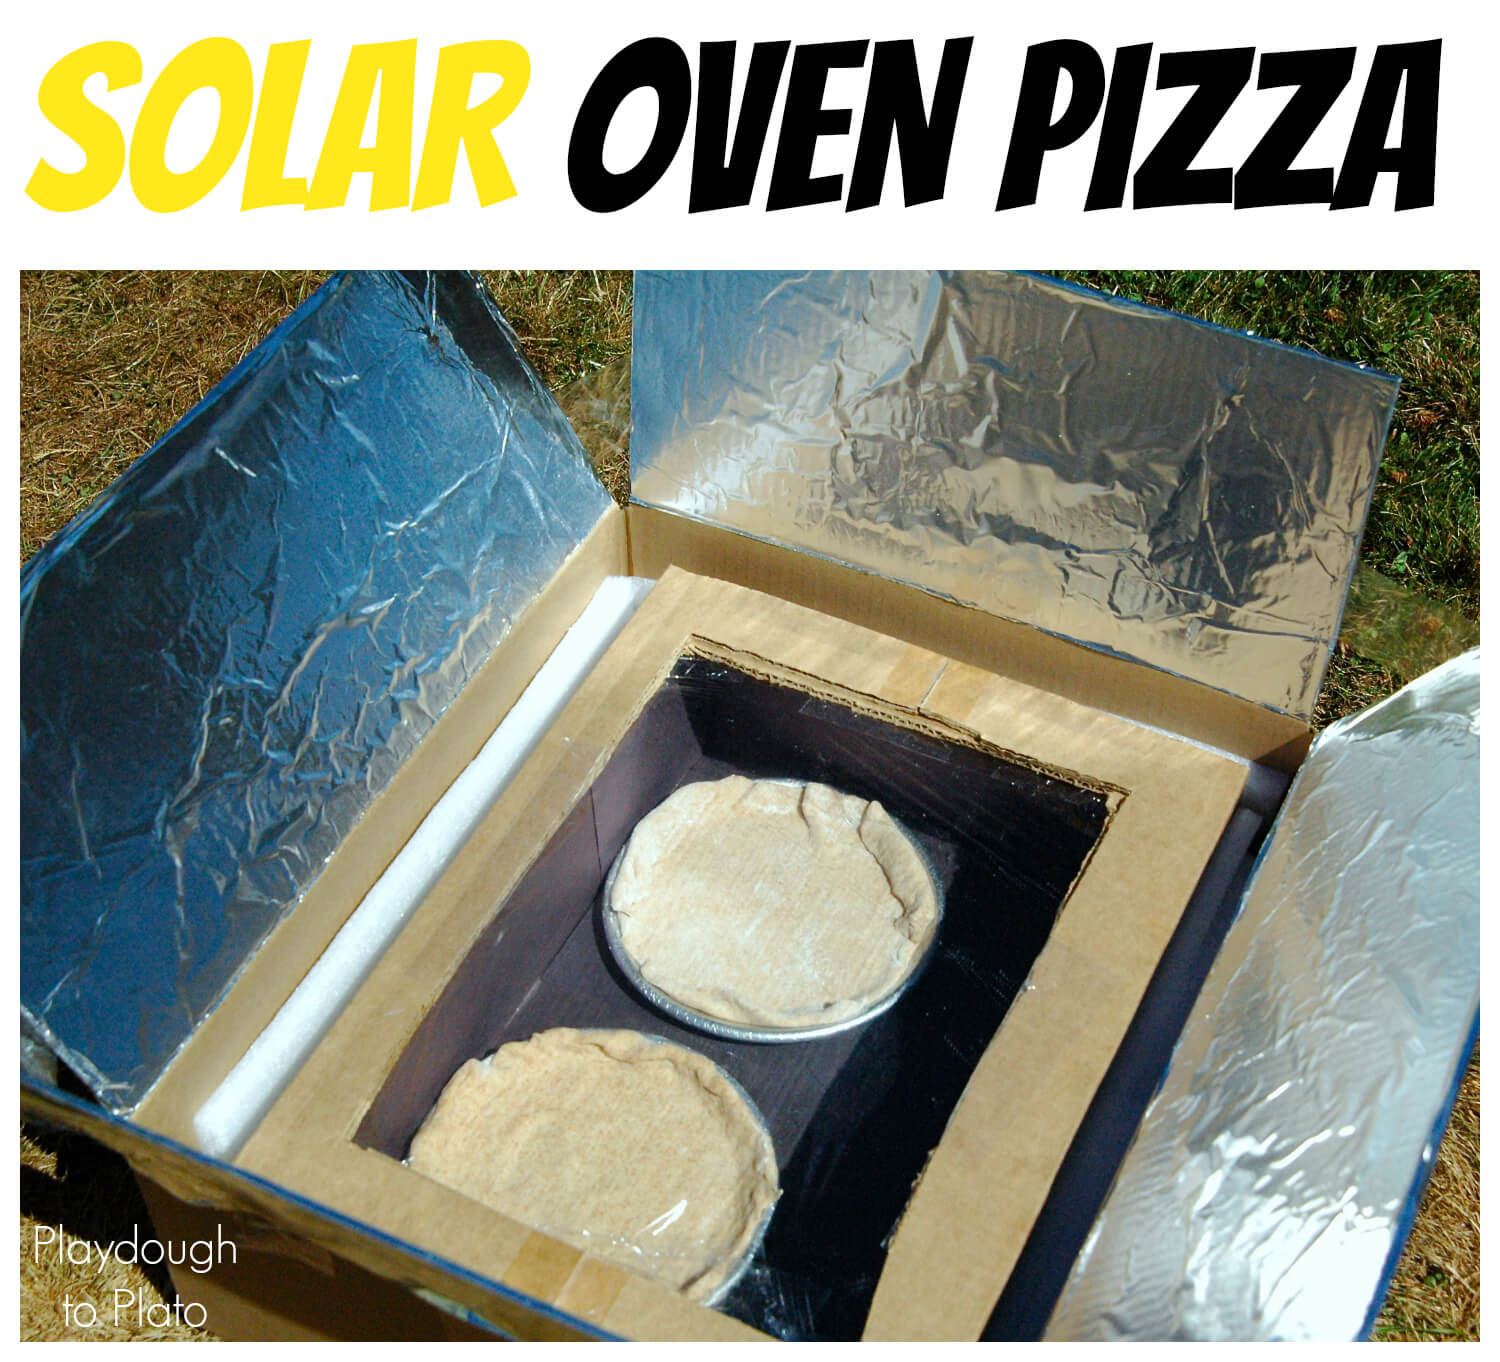 Solar oven pizza playdough to plato for How to build a solar oven for kids